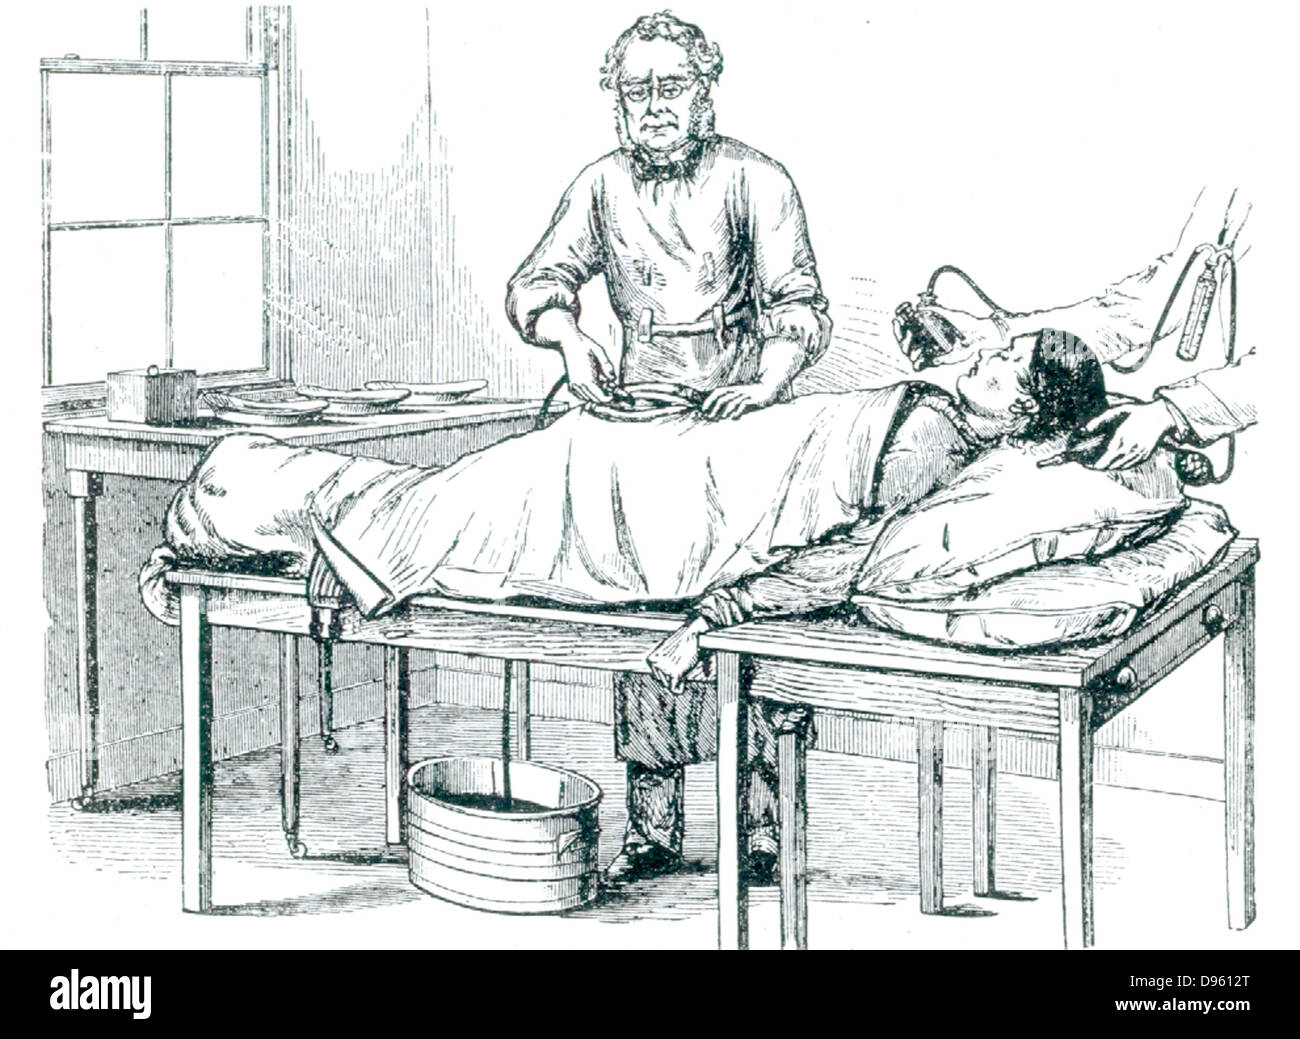 Thomas Spencer Wells (1818-1897) British gynaecolotist who perfected ovariotomy, performing an operation on a patient - Stock Image